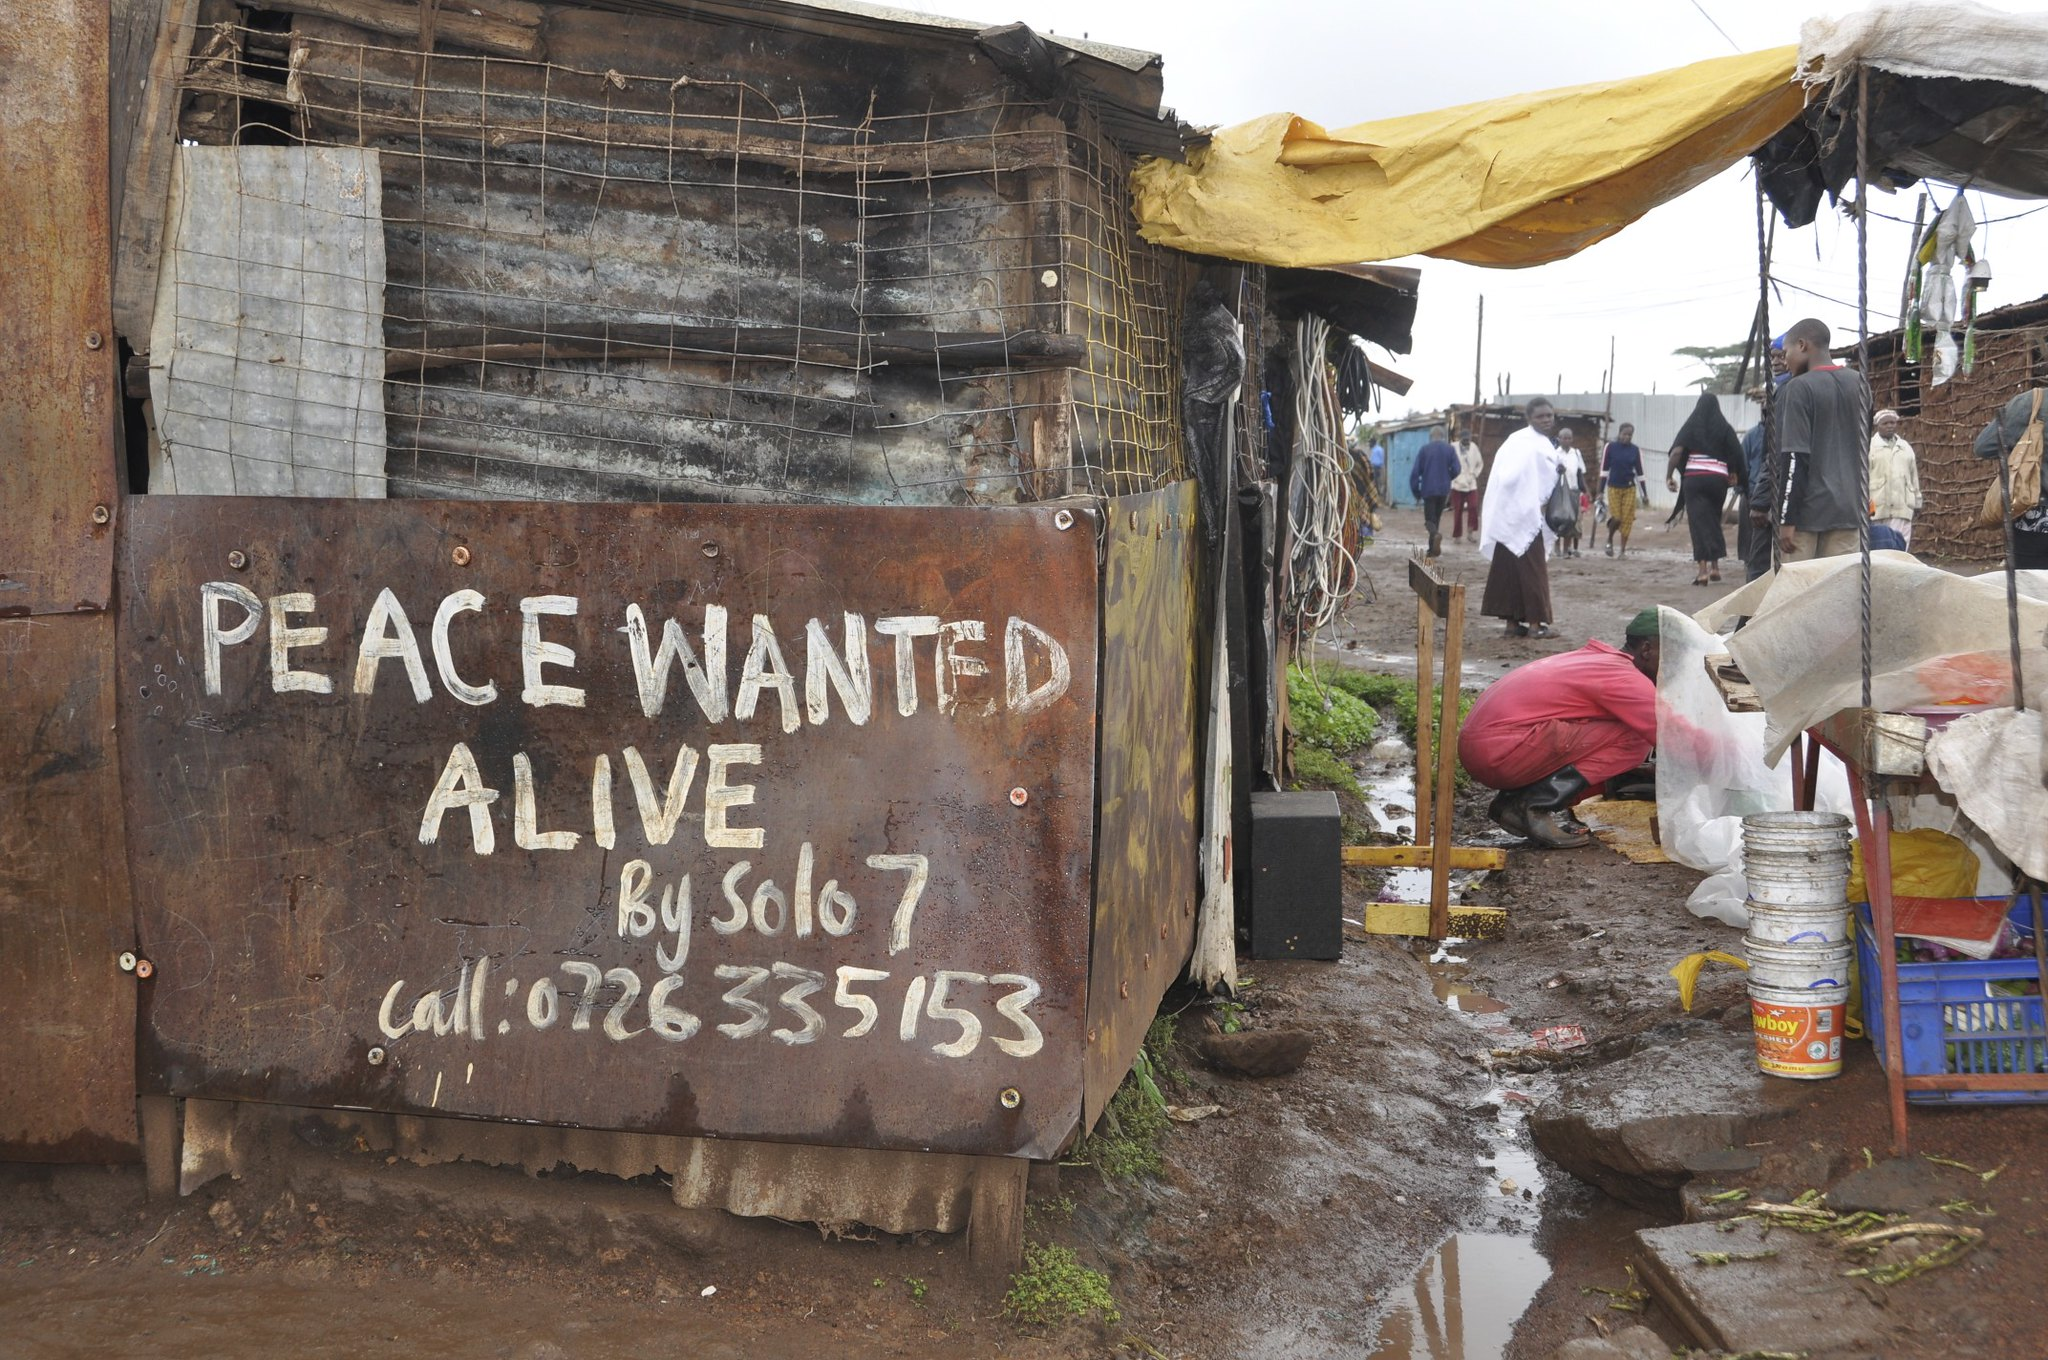 Election violence graffiti in Kibera